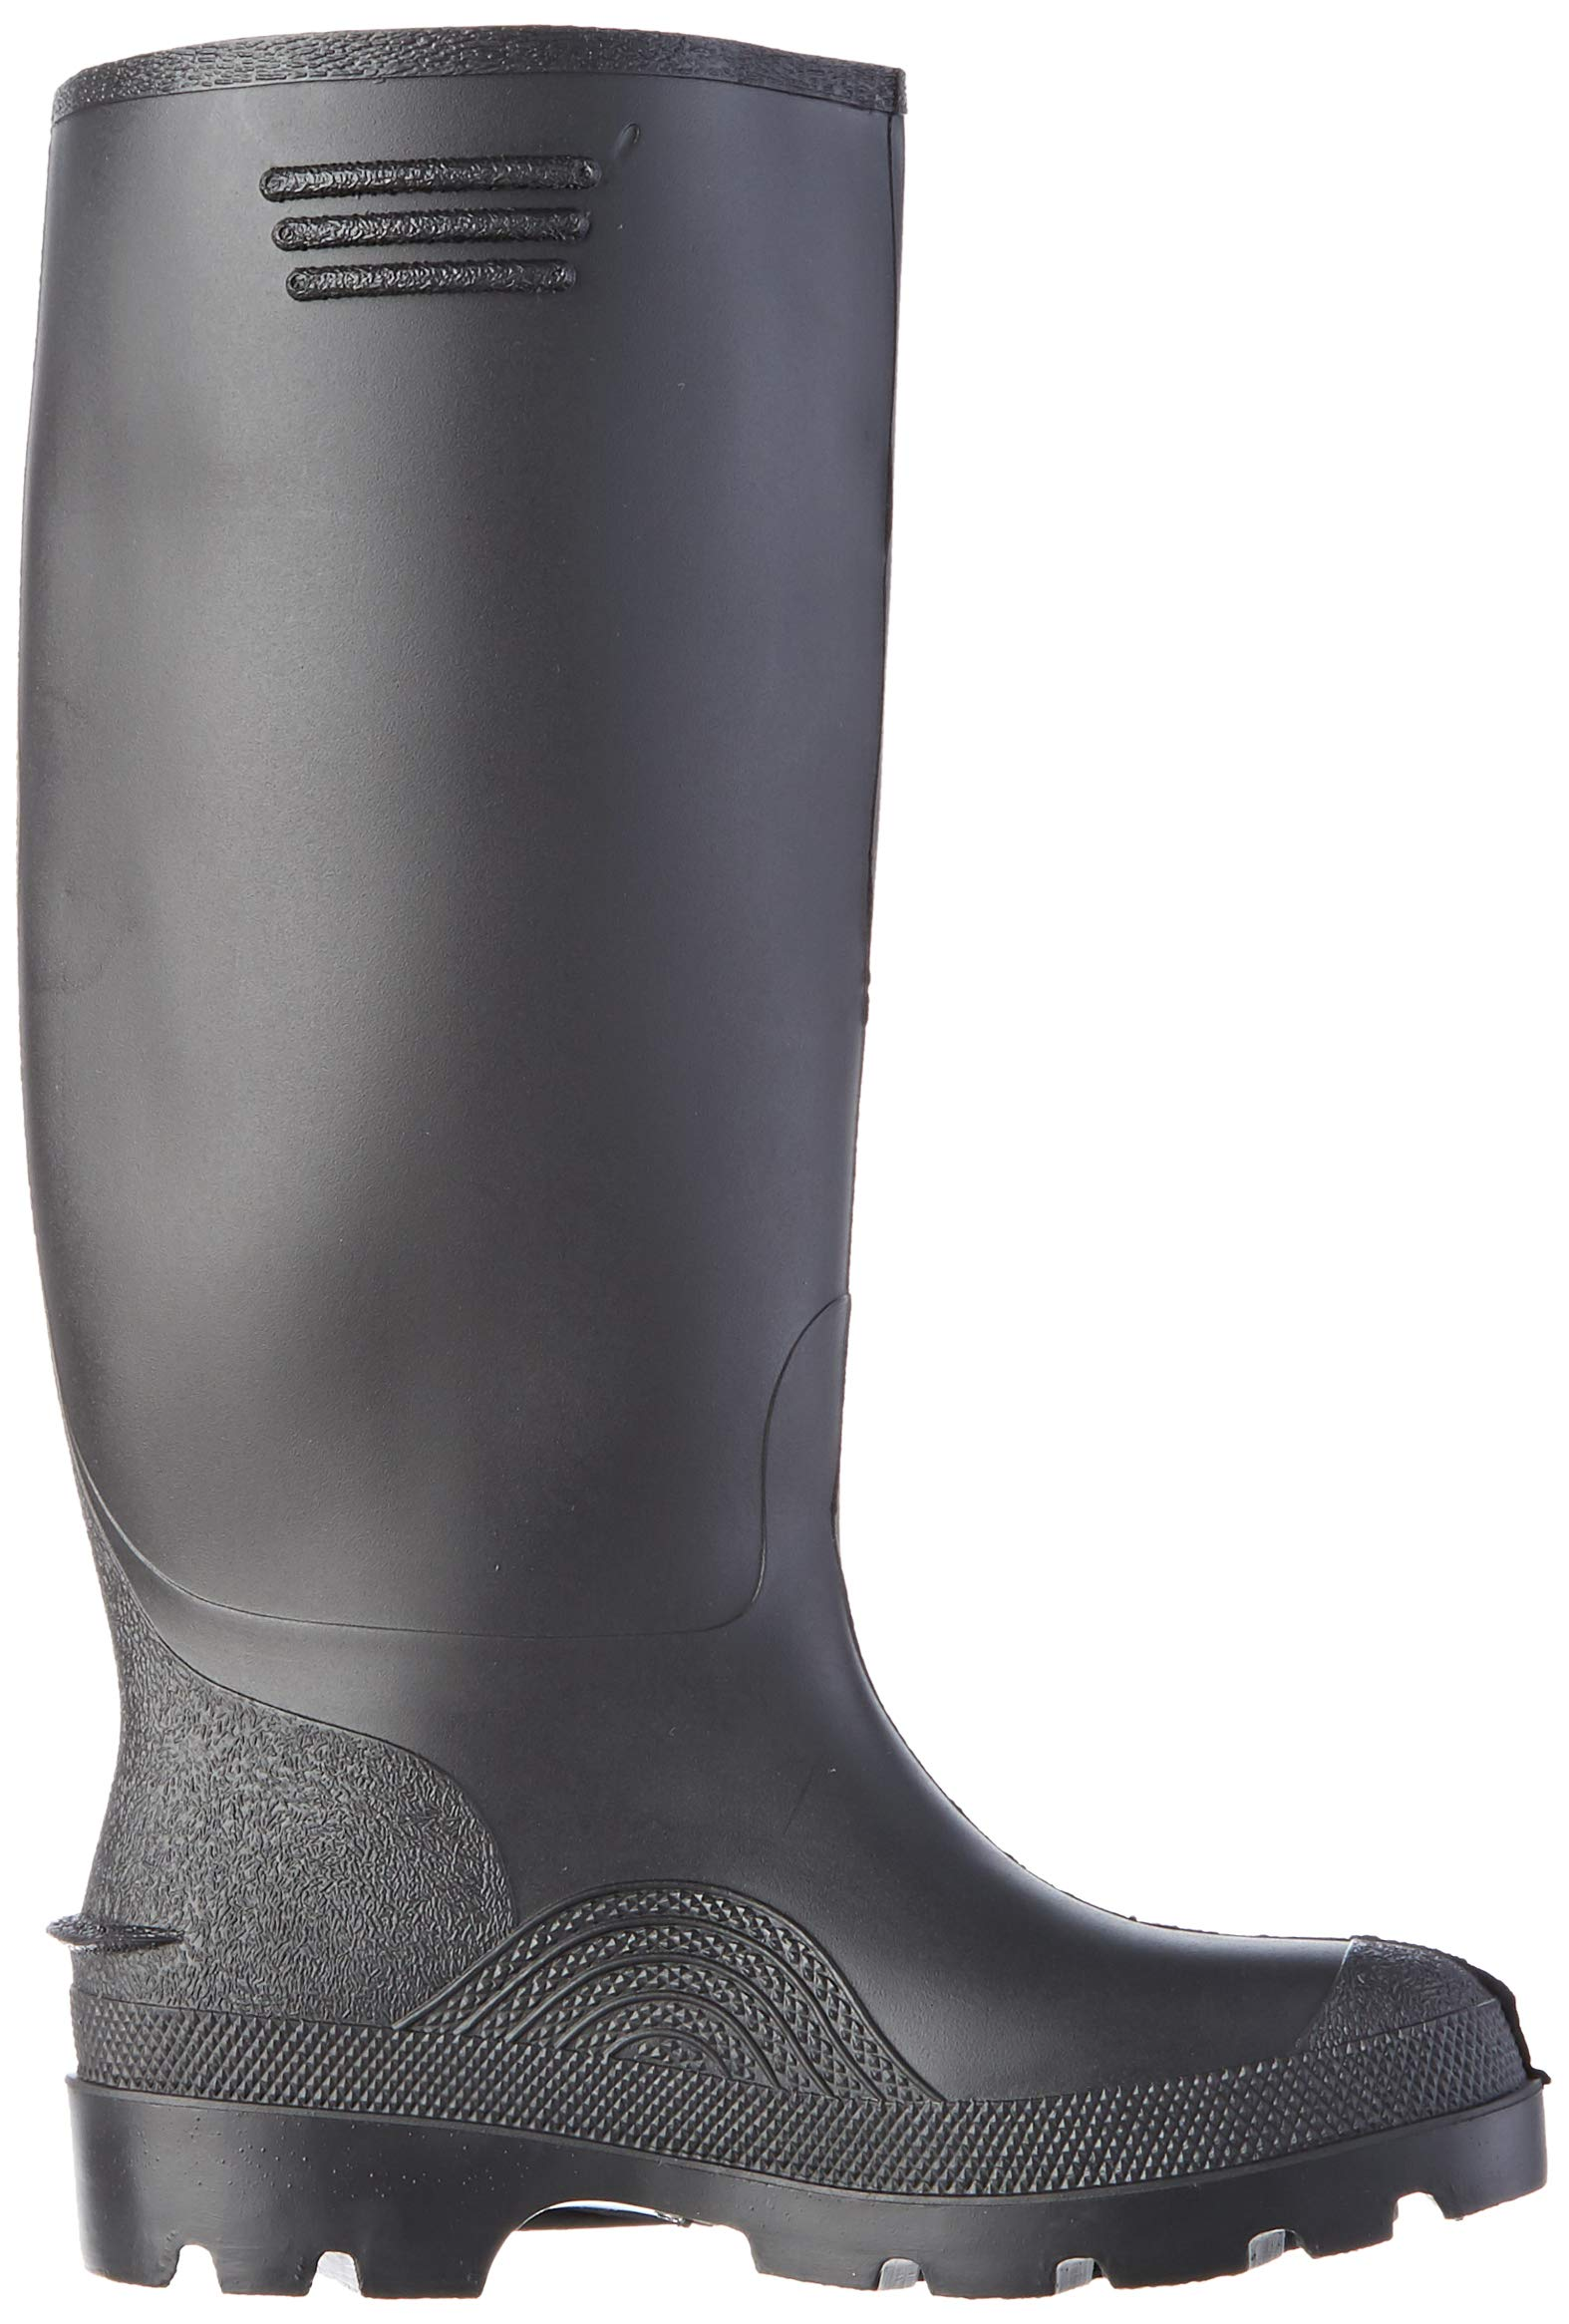 Dunlop Unisex Adult Pricemastor Wellington Boots 6